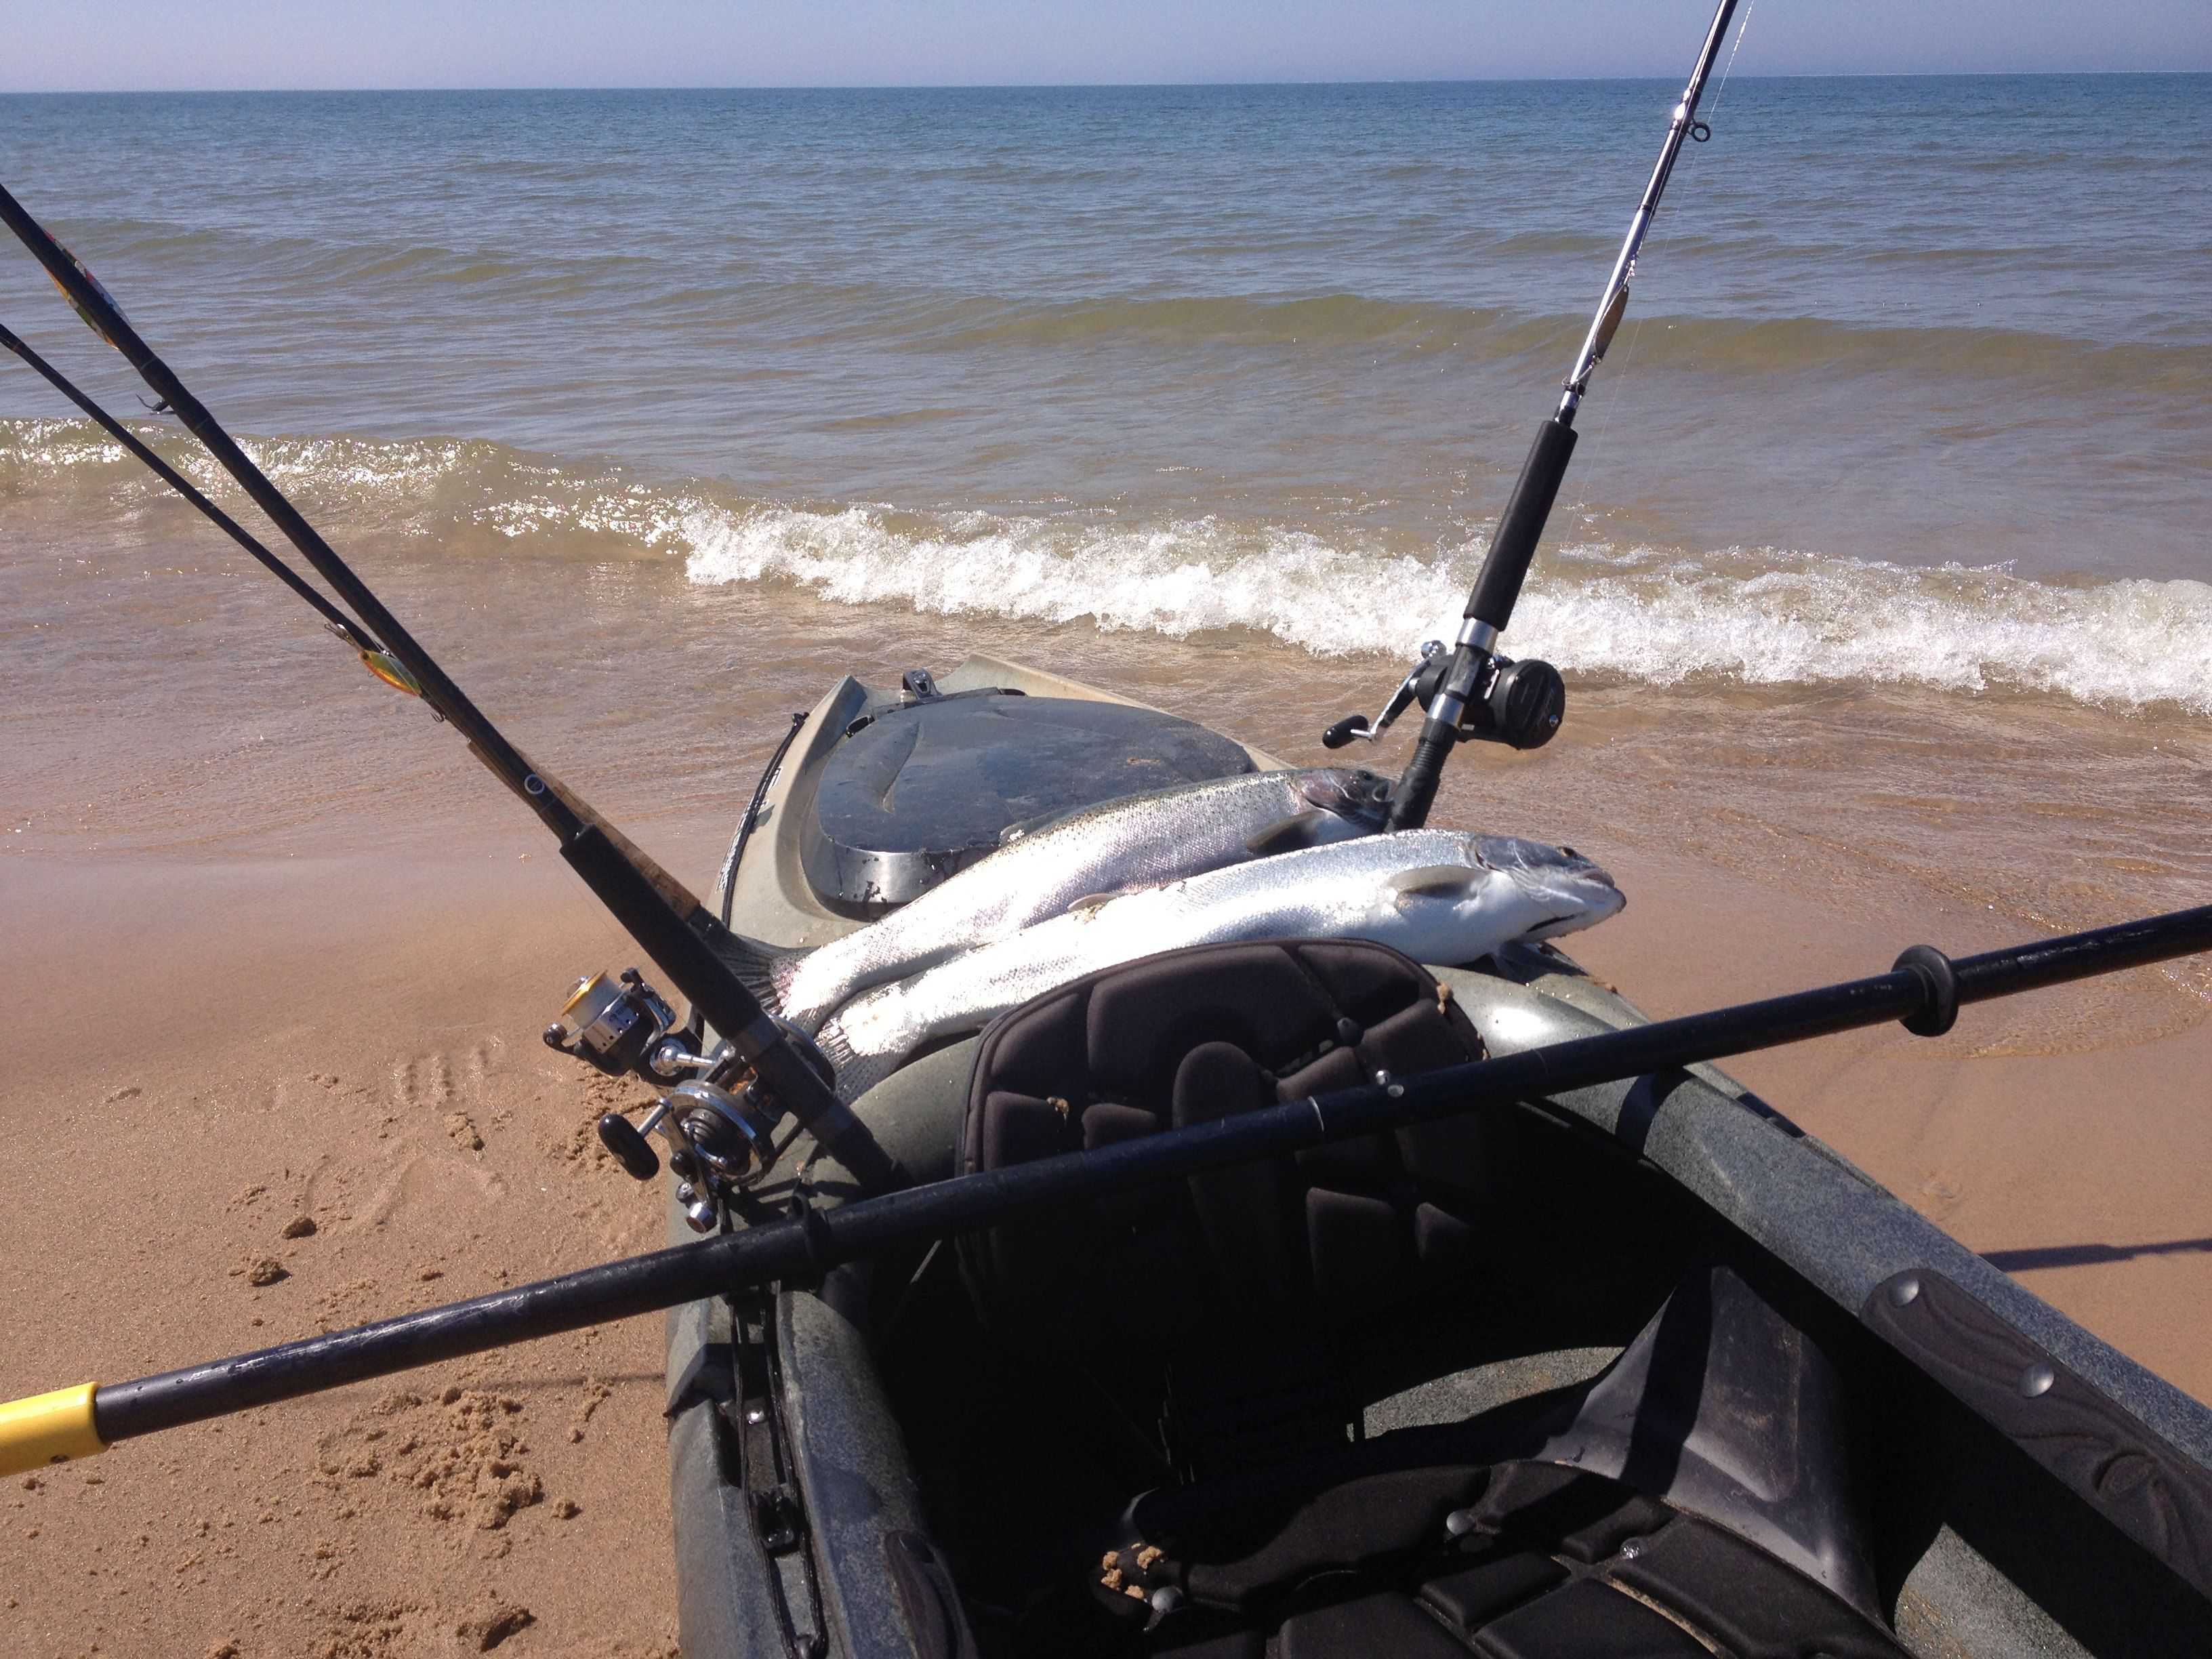 Grand haven fishing report may 2015 coastal angler for Grand haven fishing report